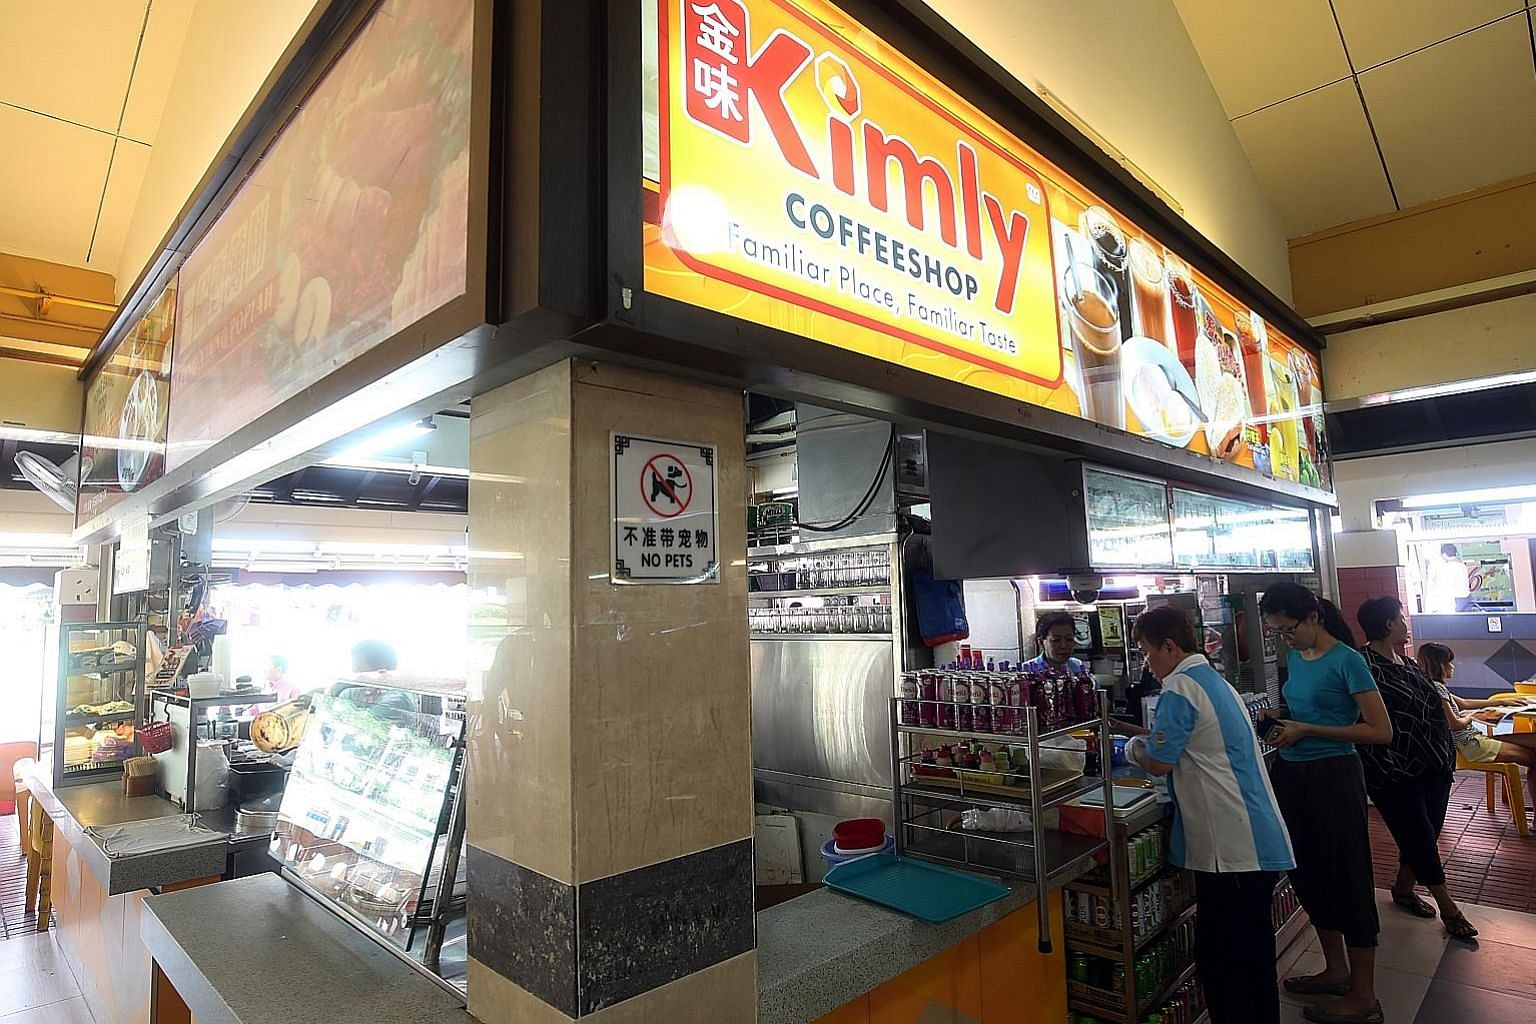 Kimly's initial public offering is one factor in an unfolding saga surrounding the coffee-shop operator and former Pokka chief executive Alain Ong. Pokka says Mr Ong worked with others to divert business to another beverage firm, Asian Story Corporat